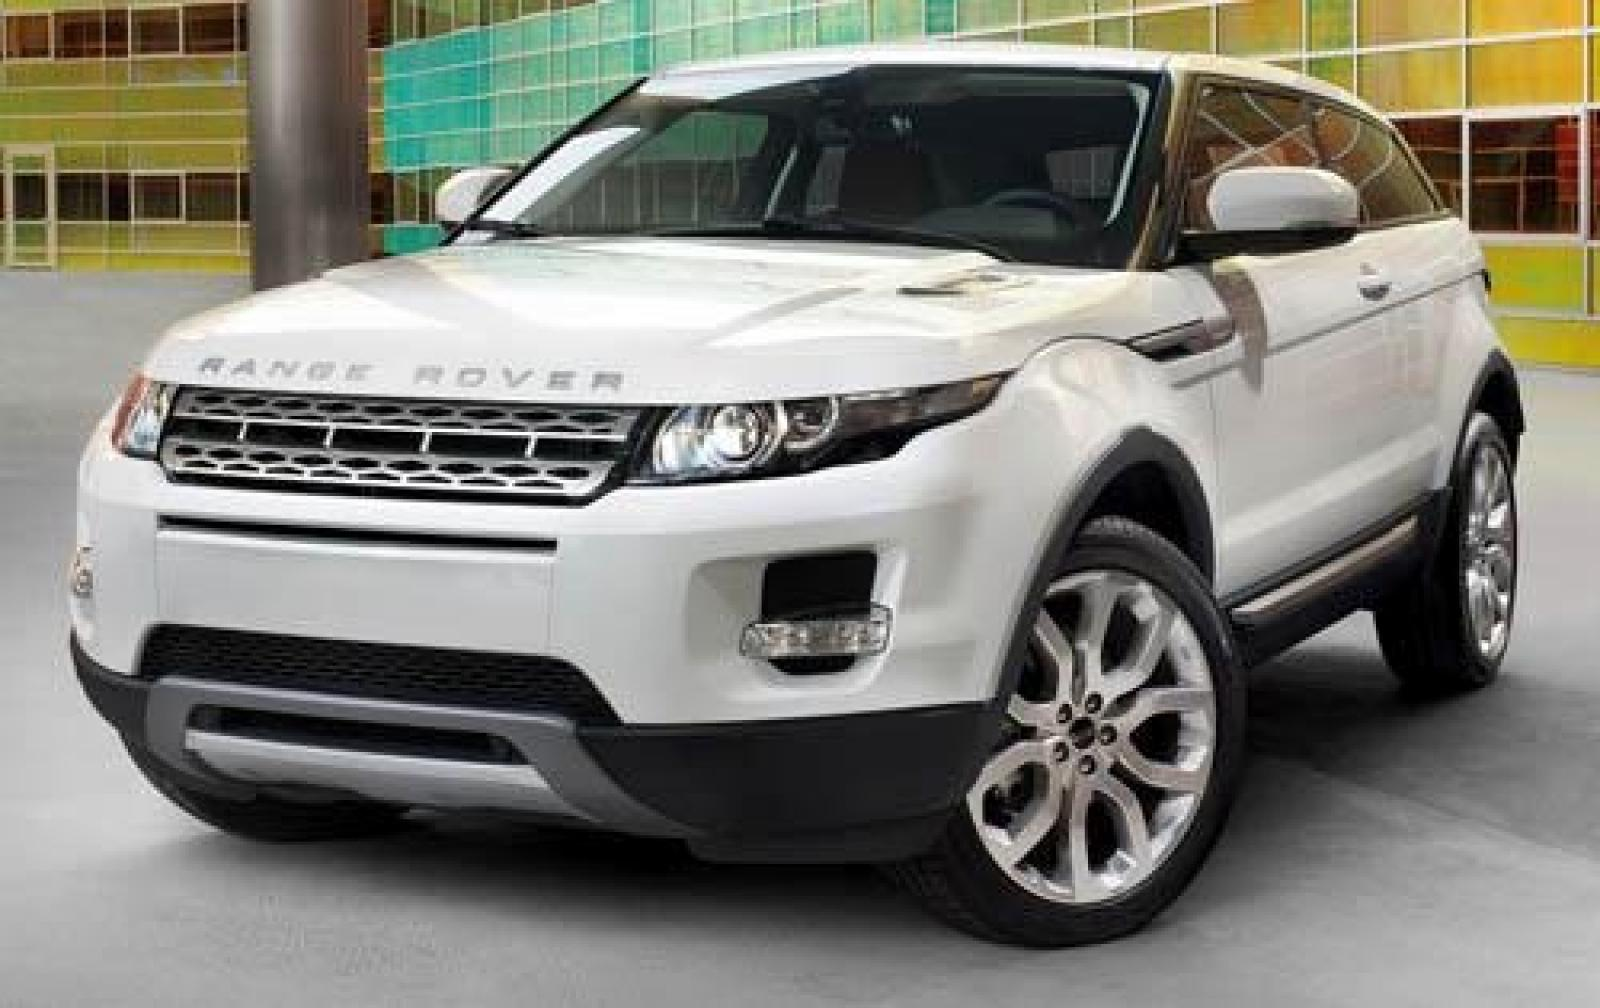 2012 land rover range rover evoque information and photos zombiedrive. Black Bedroom Furniture Sets. Home Design Ideas